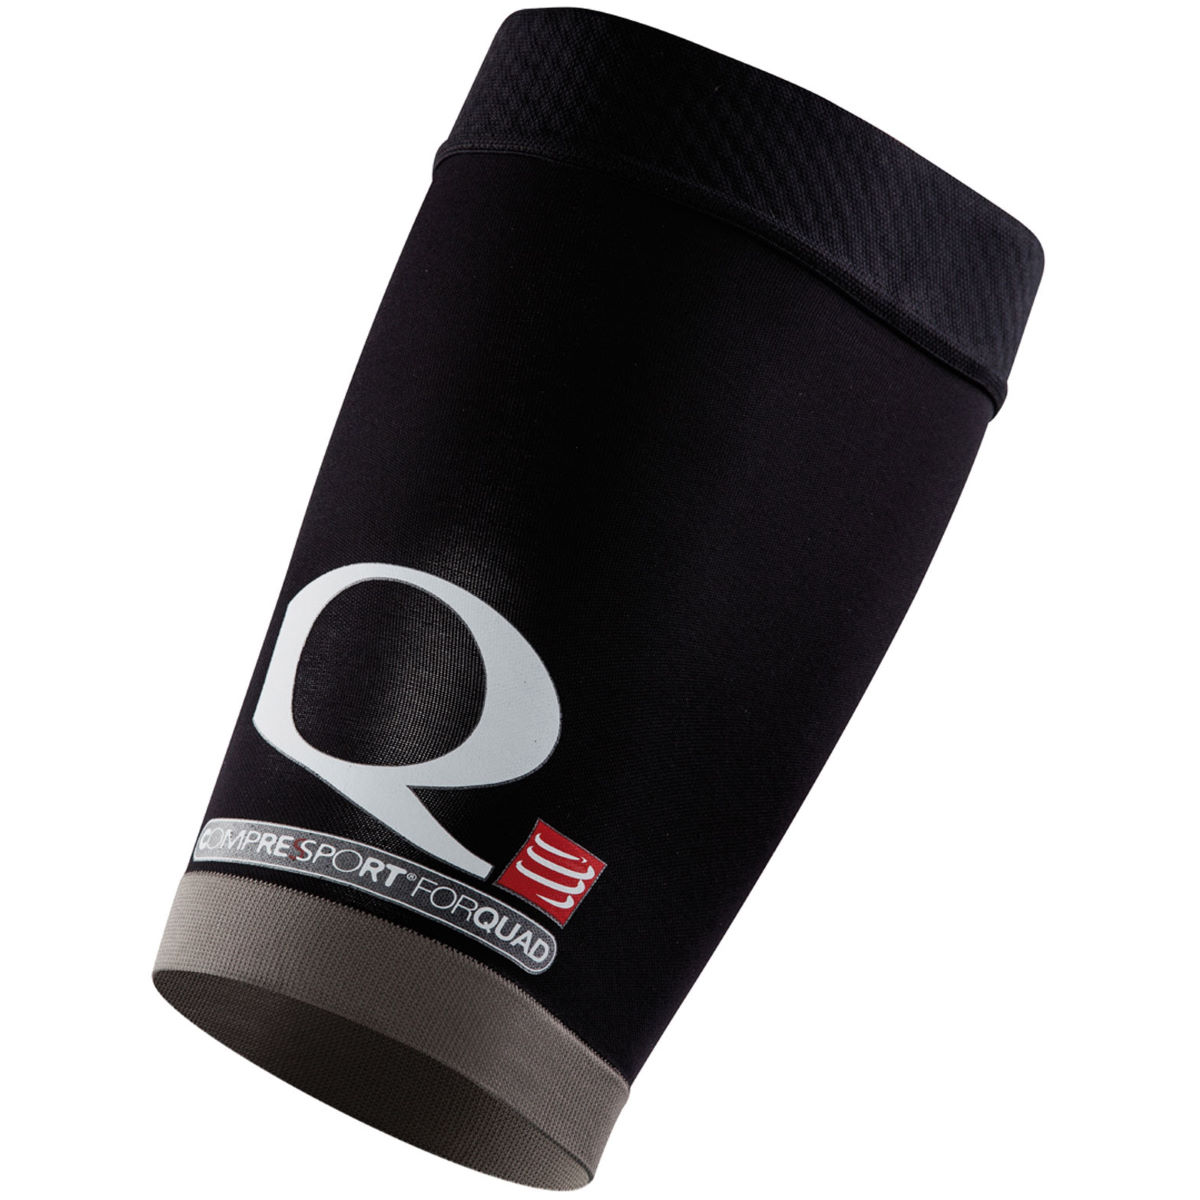 Compressport Quad Thigh Guard